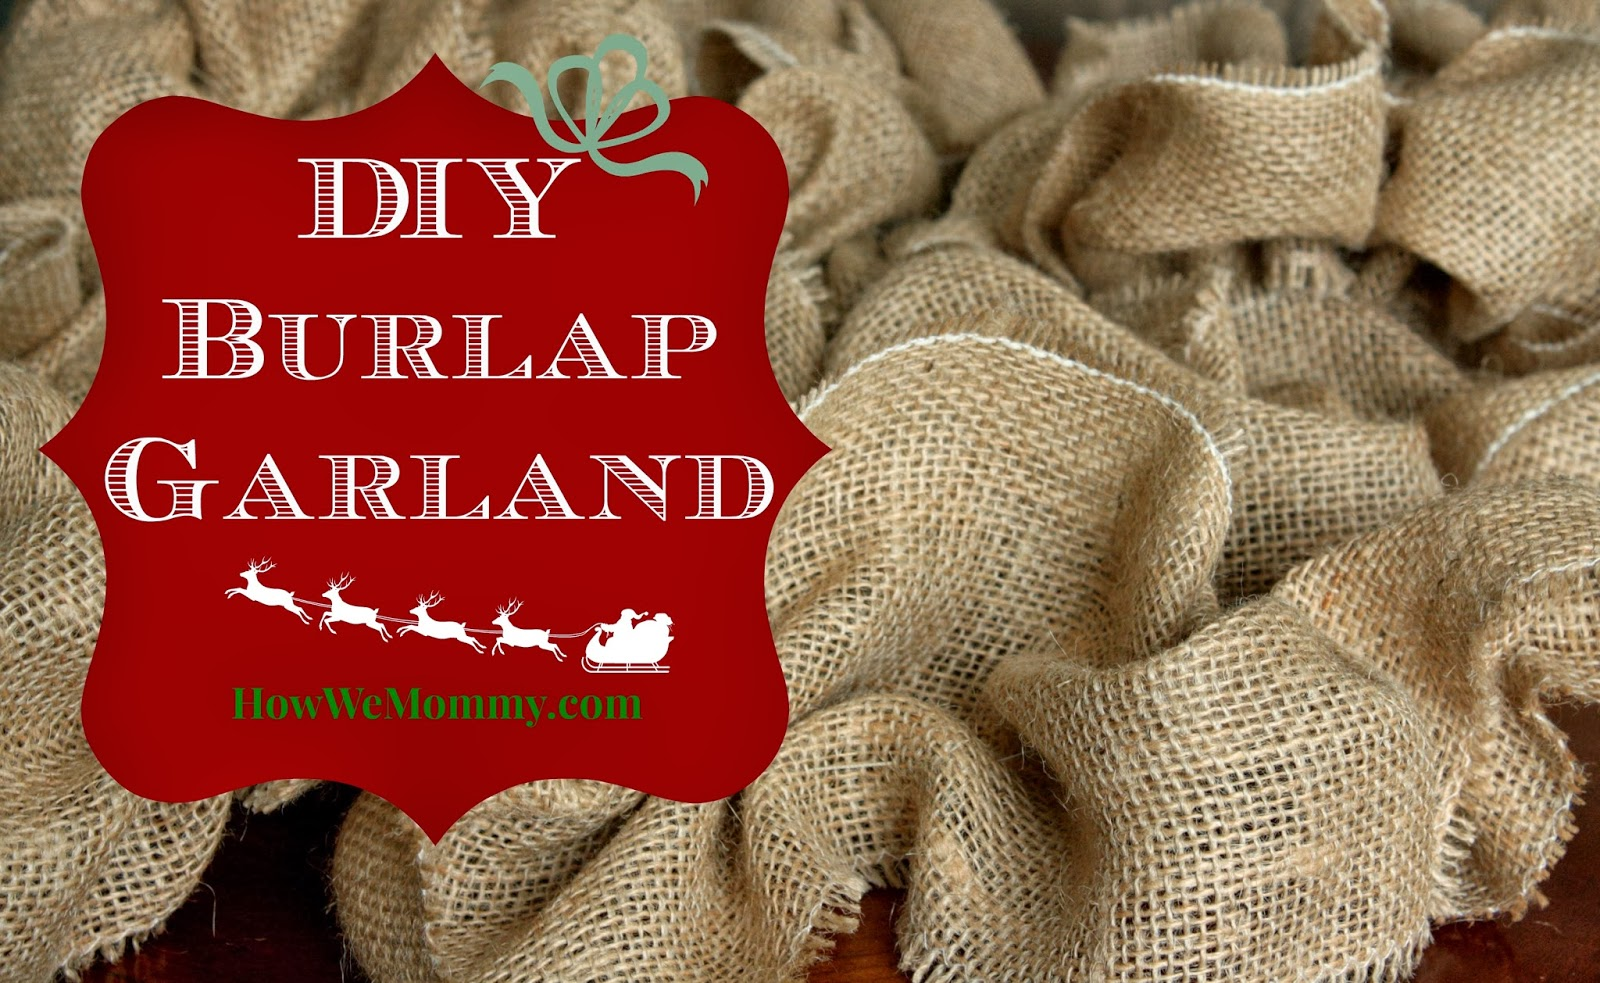 This is how we mommy diy burlap garland for Diy jute